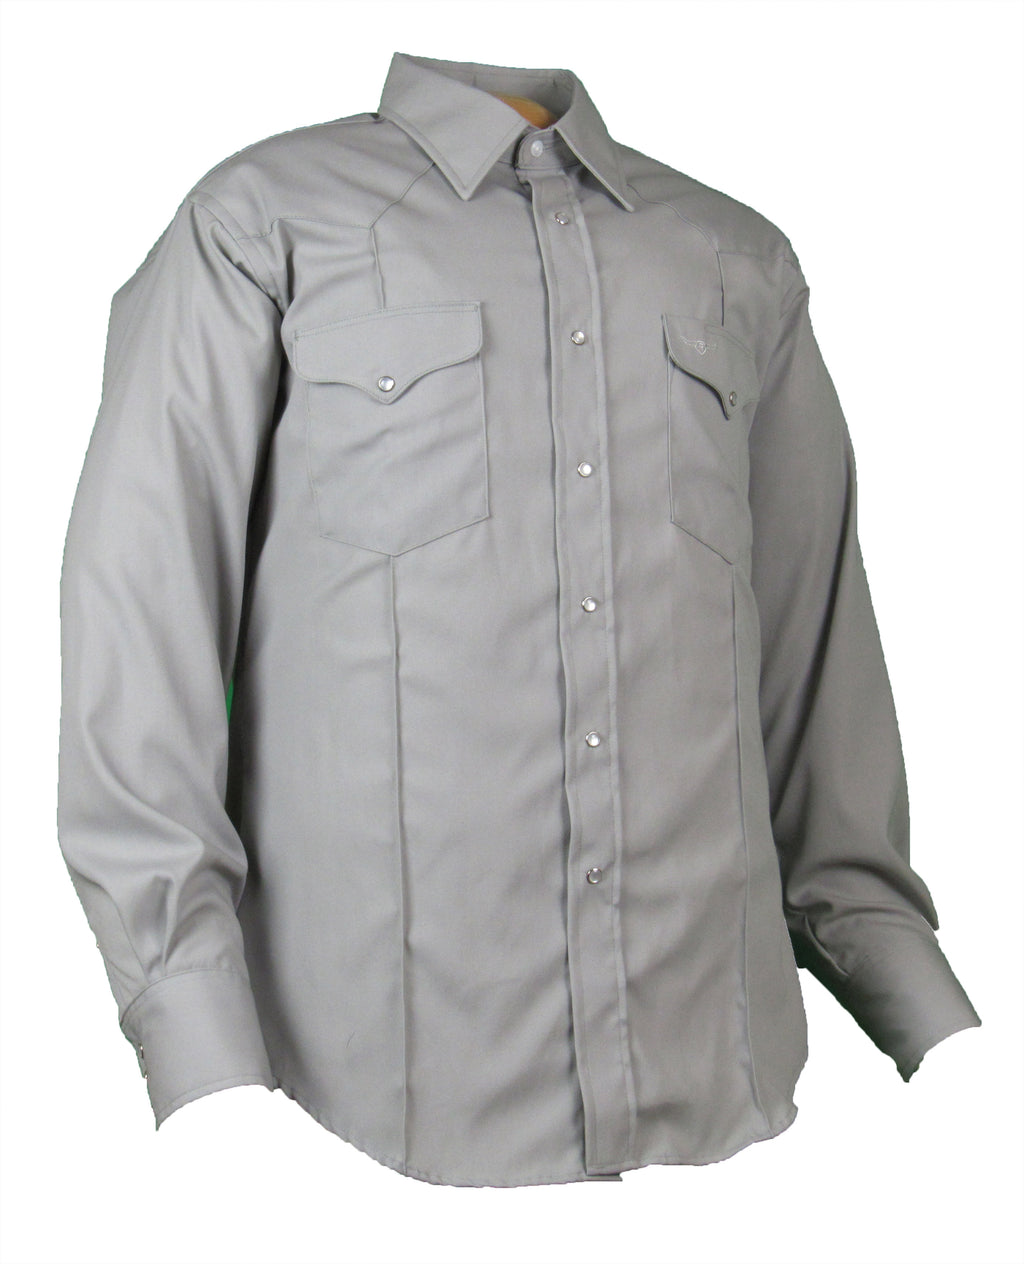 Rancher Crease - Lt. Grey - Long Sleeve - Snaps